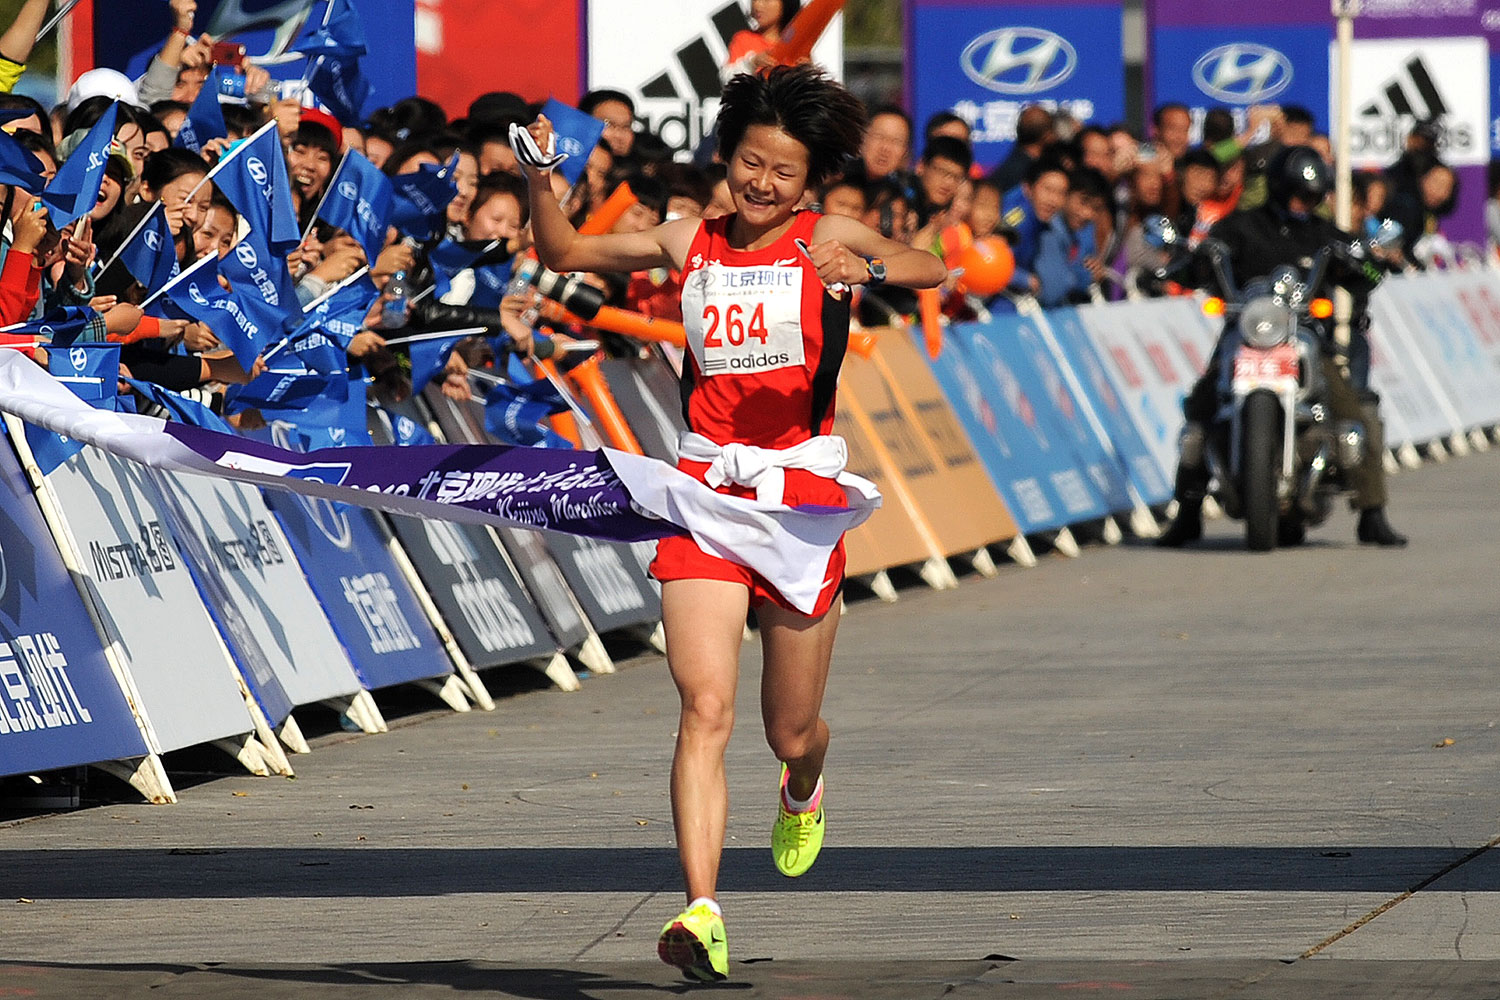 Zhang Yingying crosses the finish line to win the women's race at the Beijing Marathon.